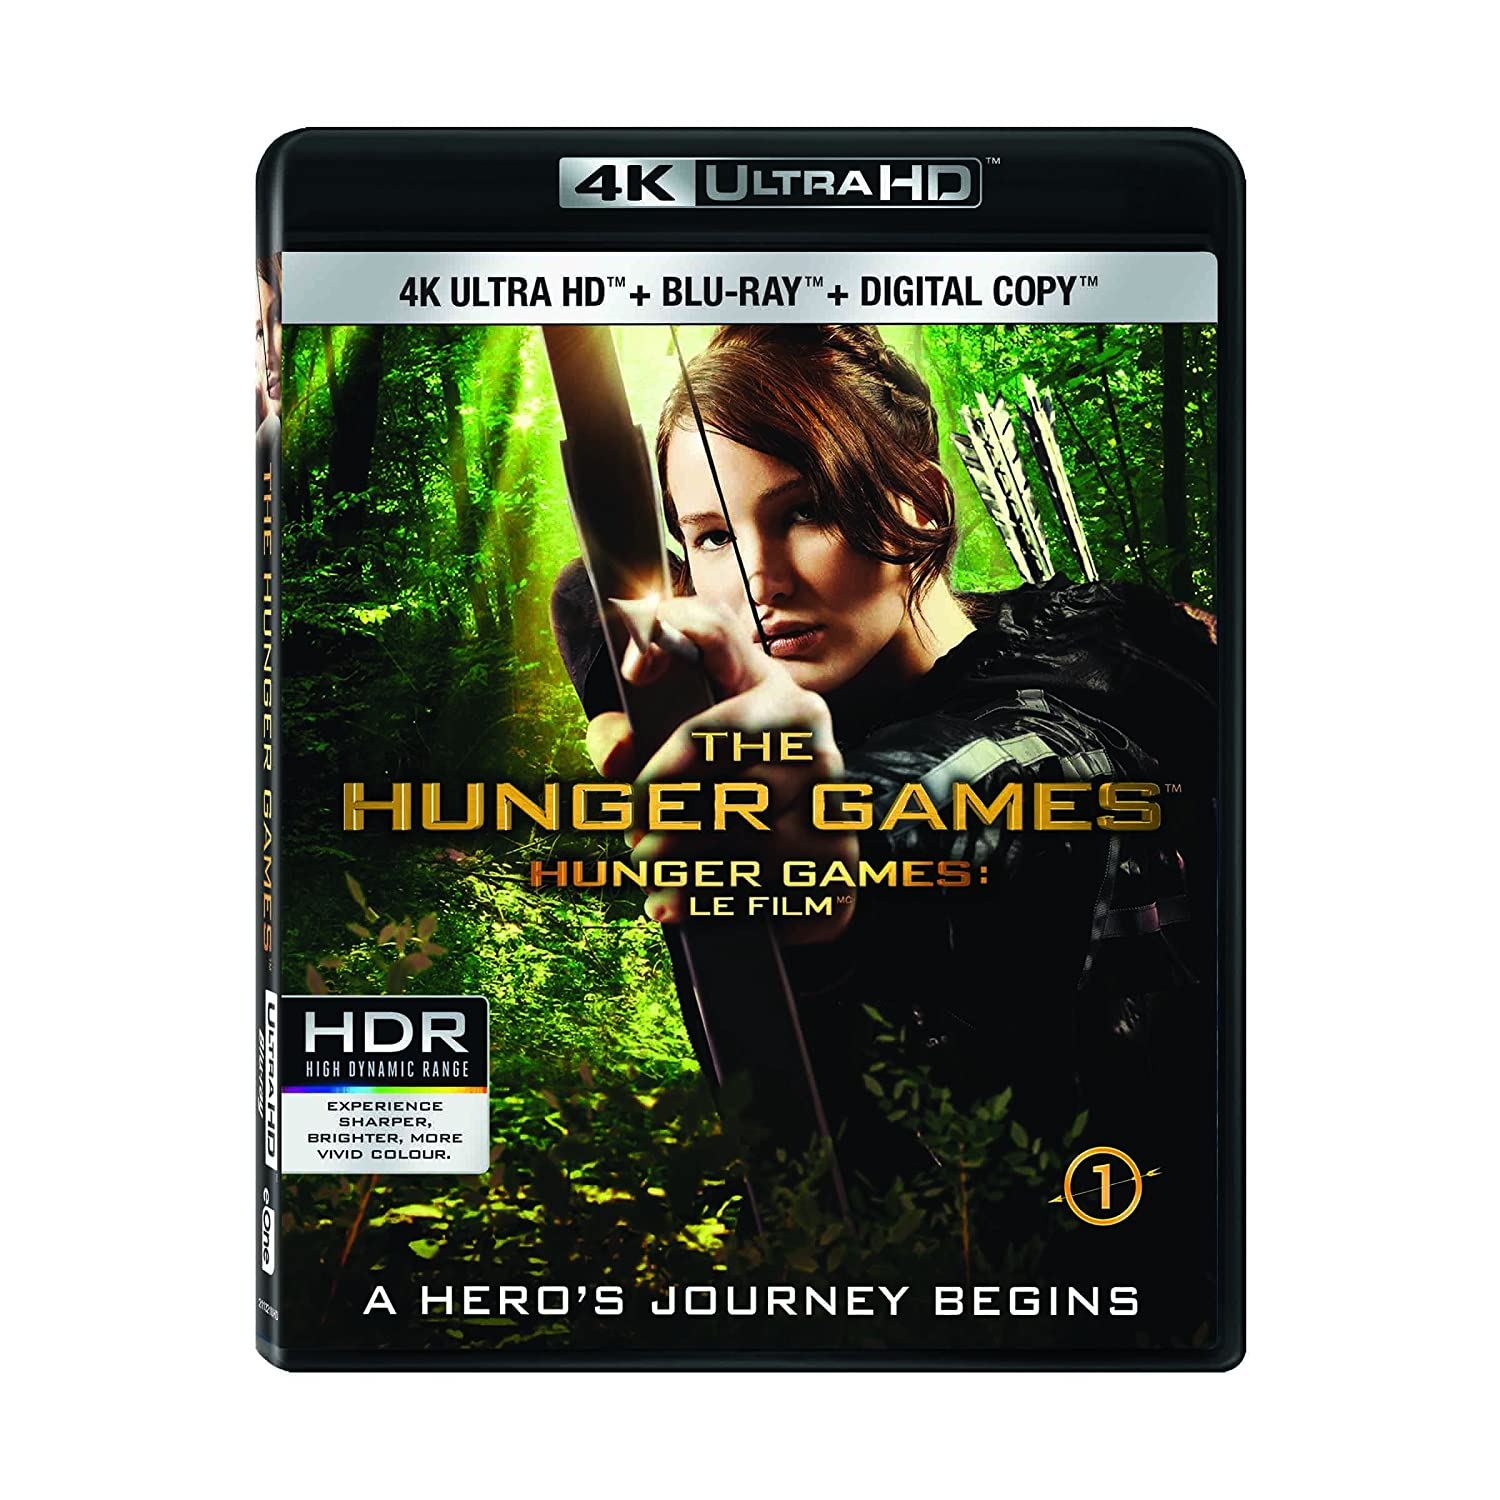 The Hunger Games [4K Ultra HD+ Blu-ray + Digital Copy] Various Lionsgate Home Entertainment Action & Adventure